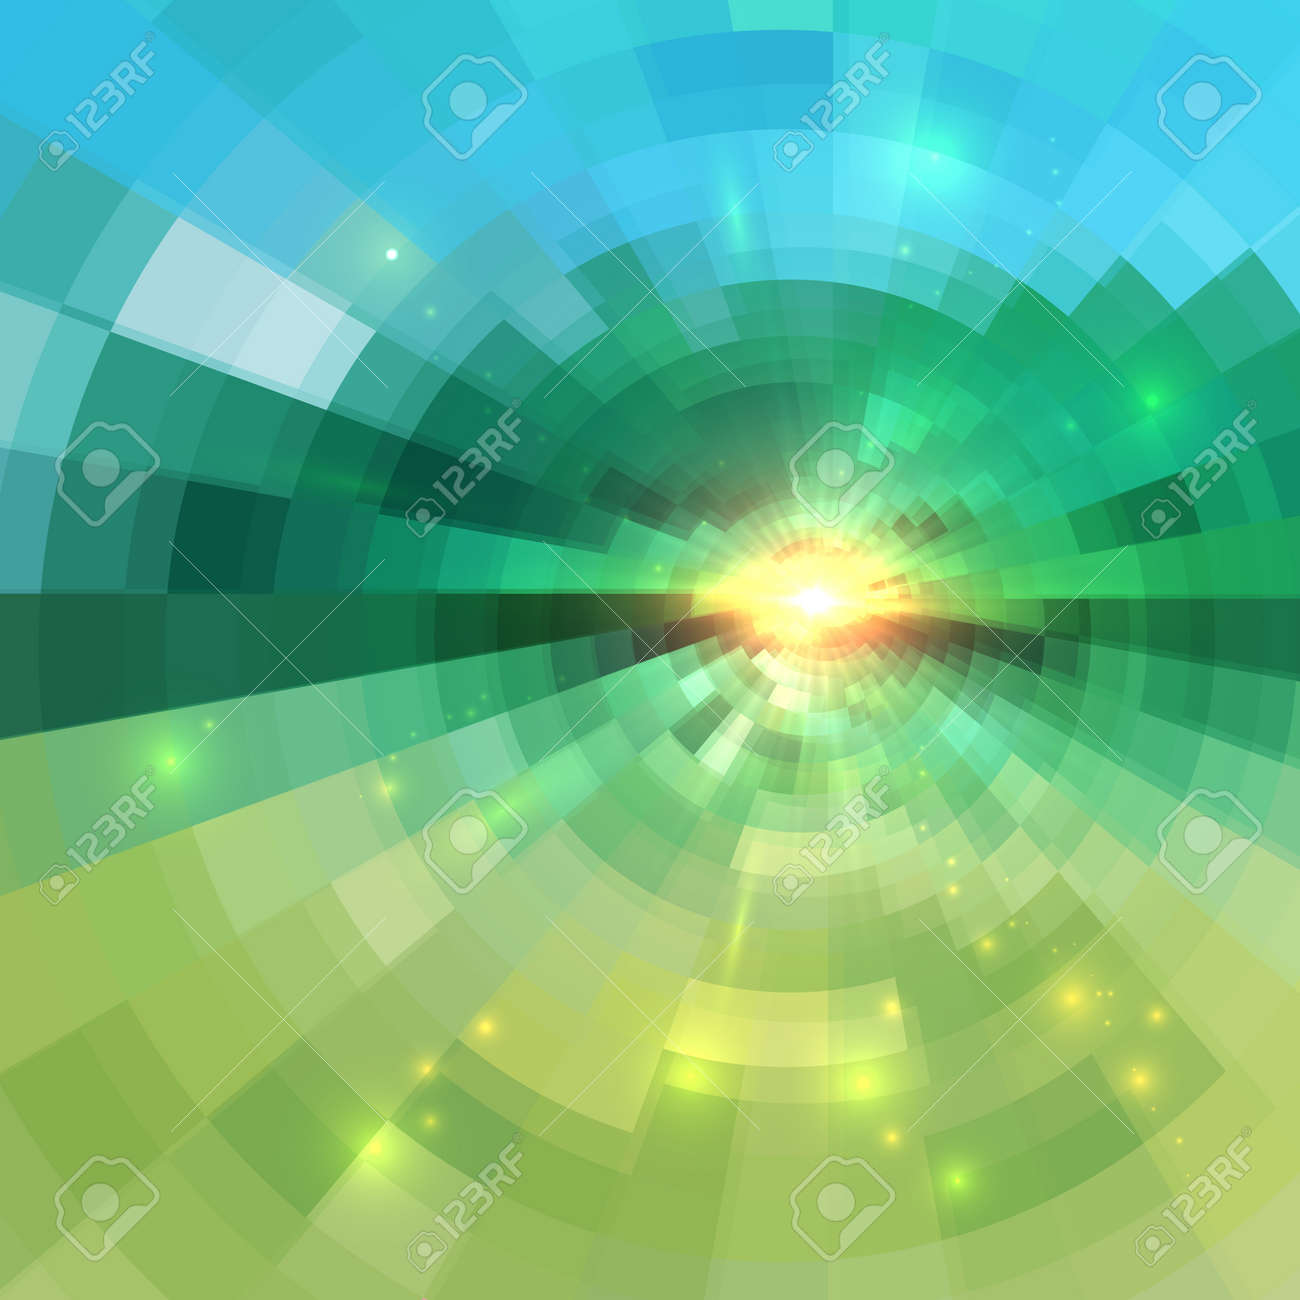 Abstract green technology concentric mosaic vector background Stock Vector - 42443966